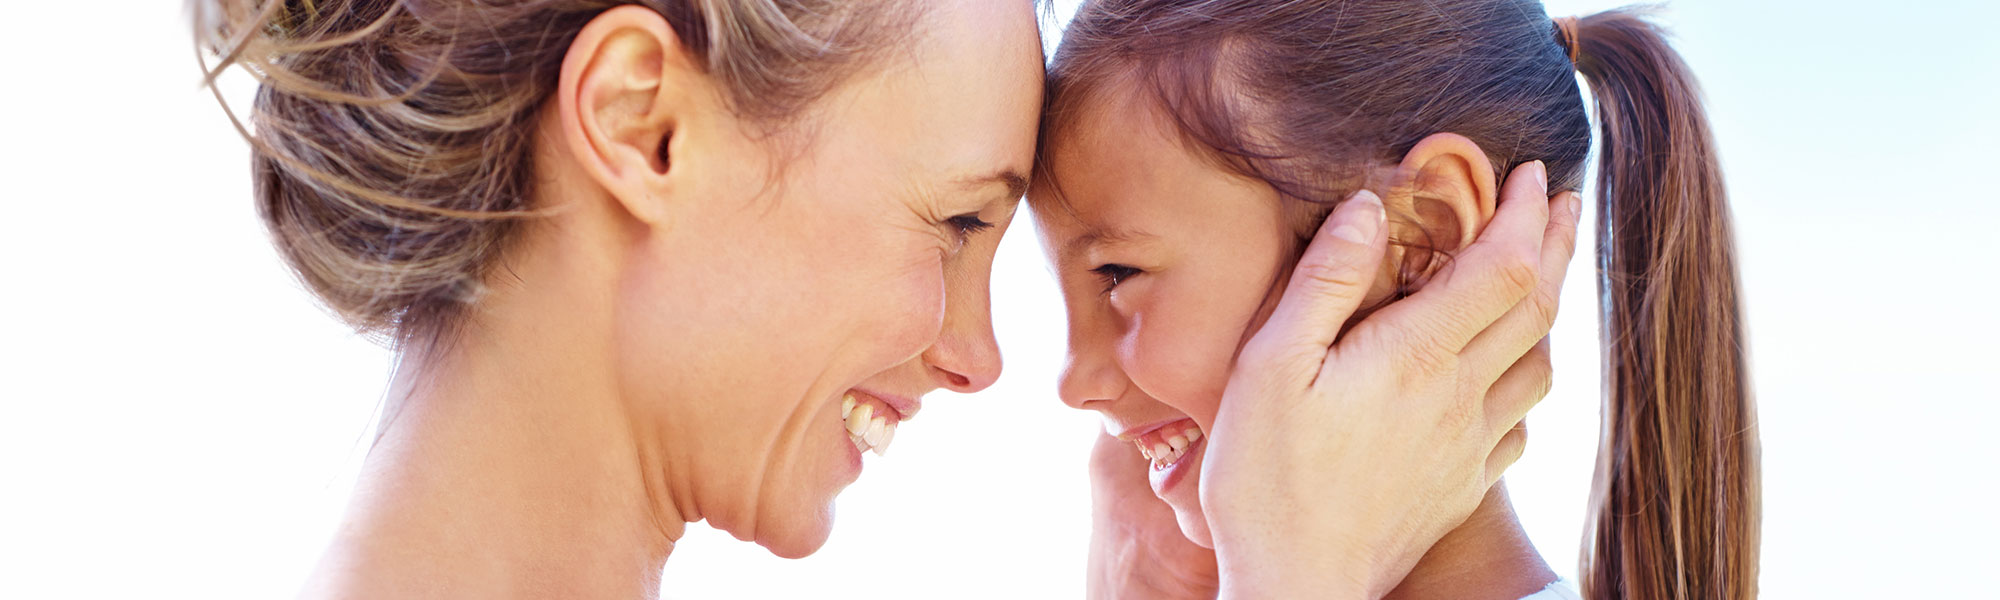 Pediatric Dentist Santa Barbara CA